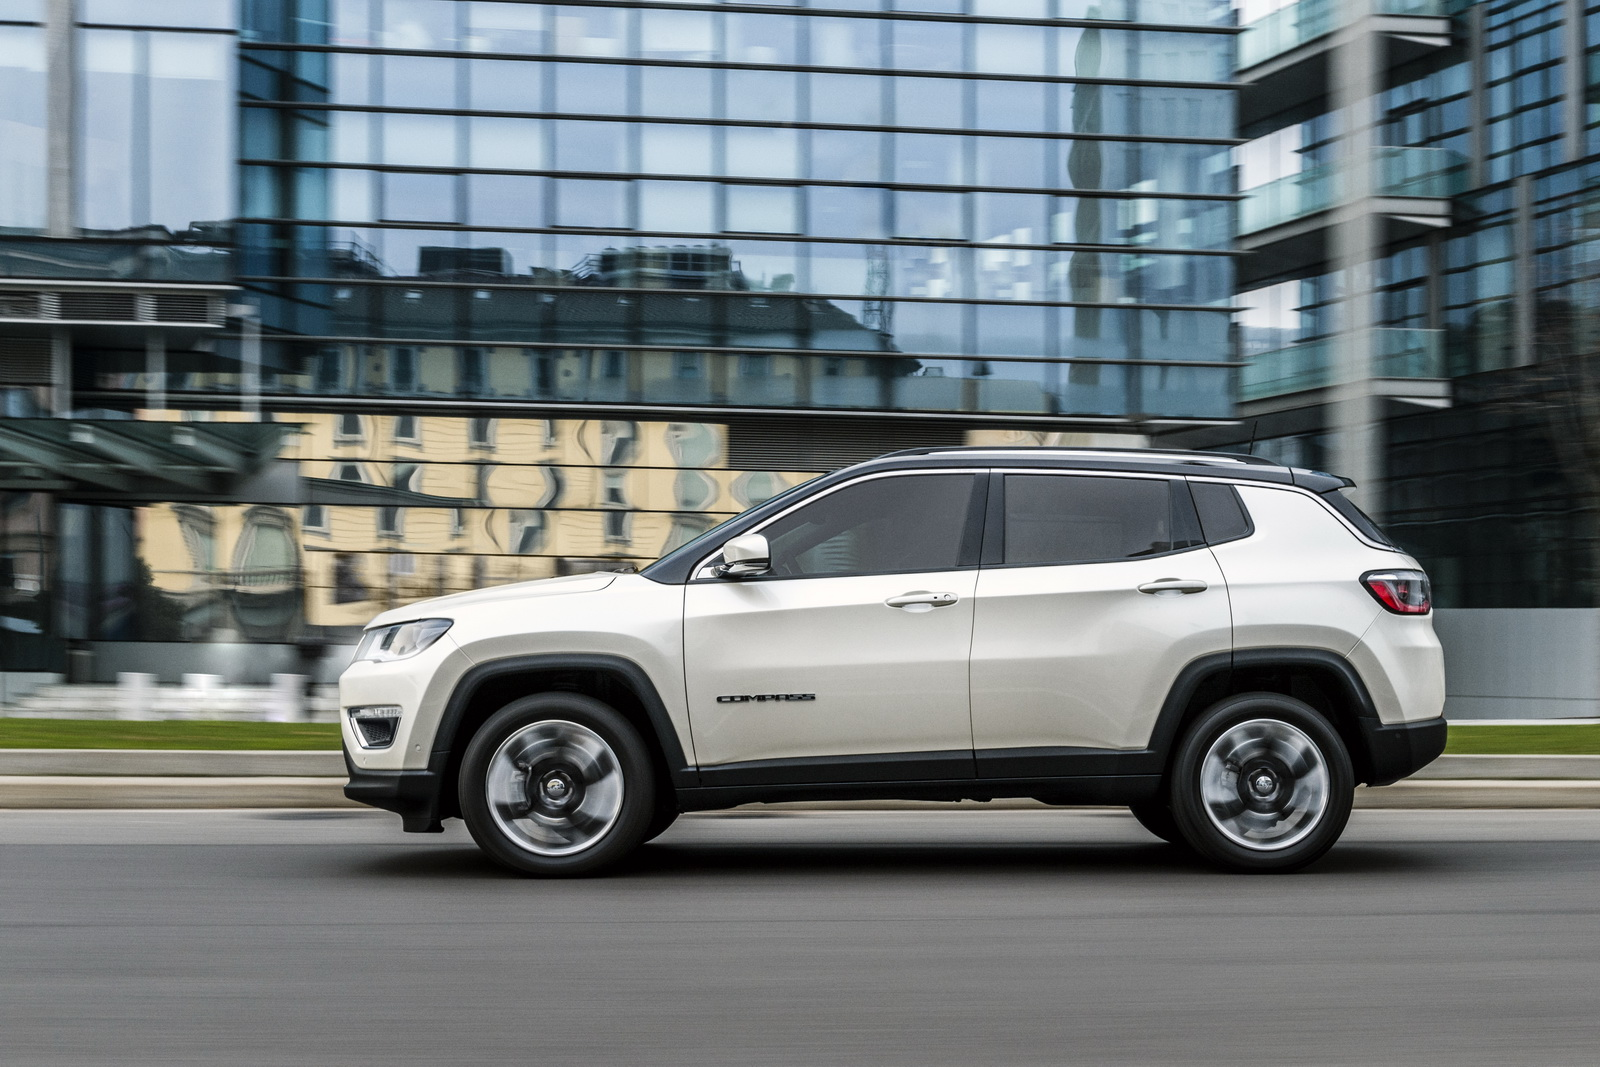 new jeep compass officially launched in europe 38 photos. Black Bedroom Furniture Sets. Home Design Ideas